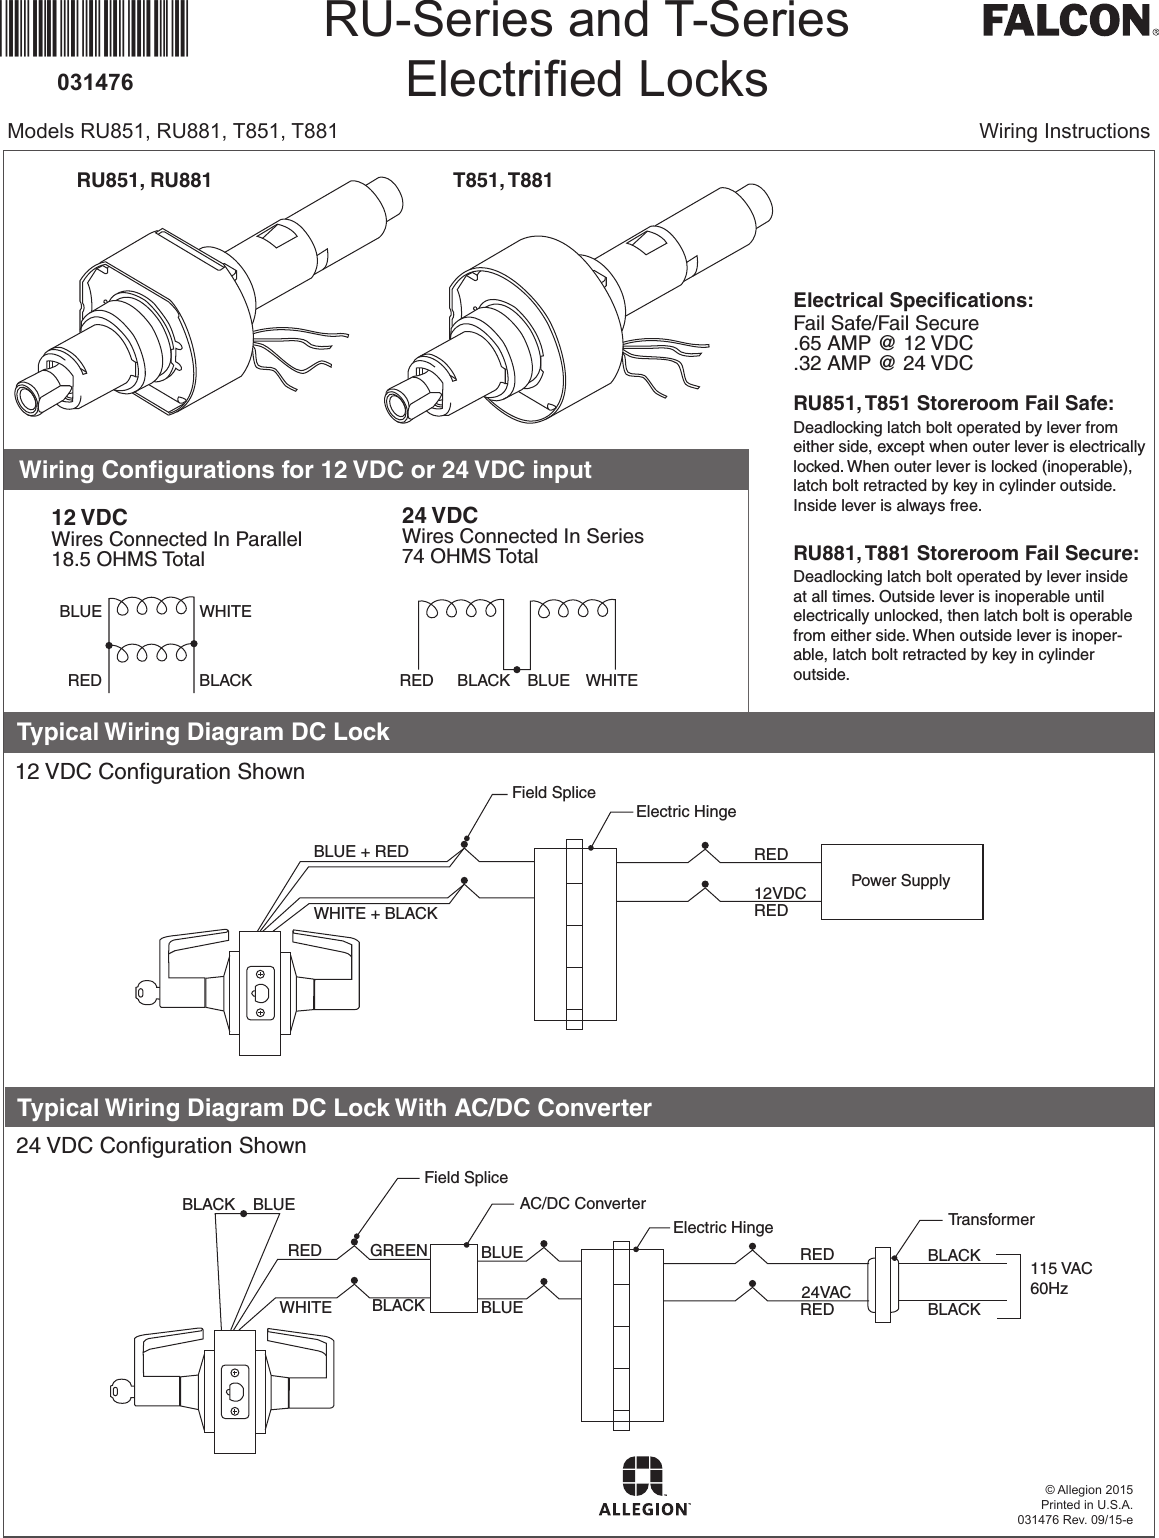 Falcon T Series Installation Instructions Electrical 110164